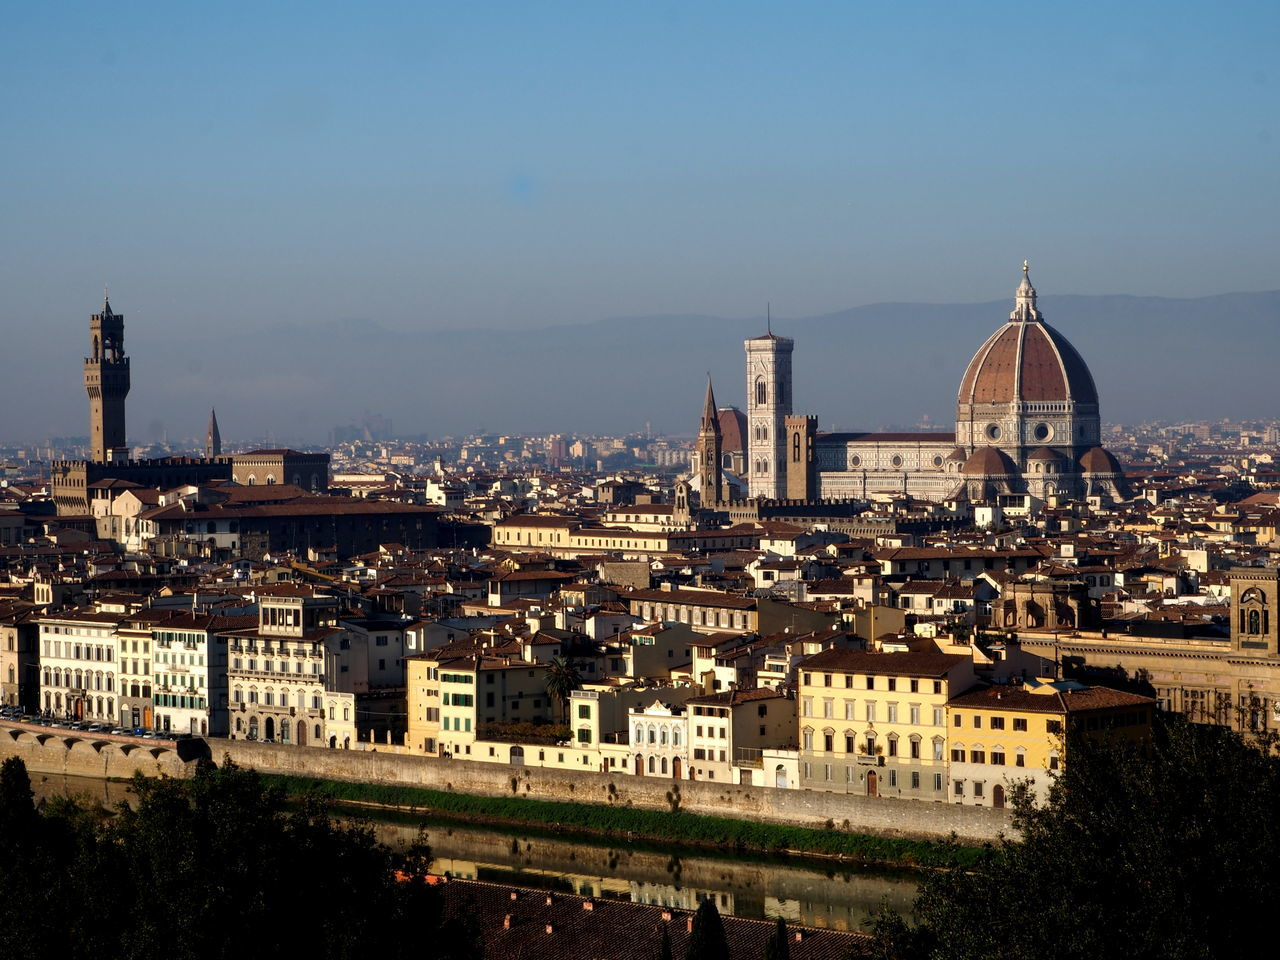 panorama of Florence, Pitti Palace and the cathedral of florence Architecture Basilic Bridge Buildings Cathedral City Florence Holy Cross Italy Italy4fun No People Outdoors Picoftheday Pitti Pitti Palace Santa Croce Seagulls Sky Sky And Clouds The Medici Family Tuscany Uffizi Uffizi Gallery Vasari Corridor Water